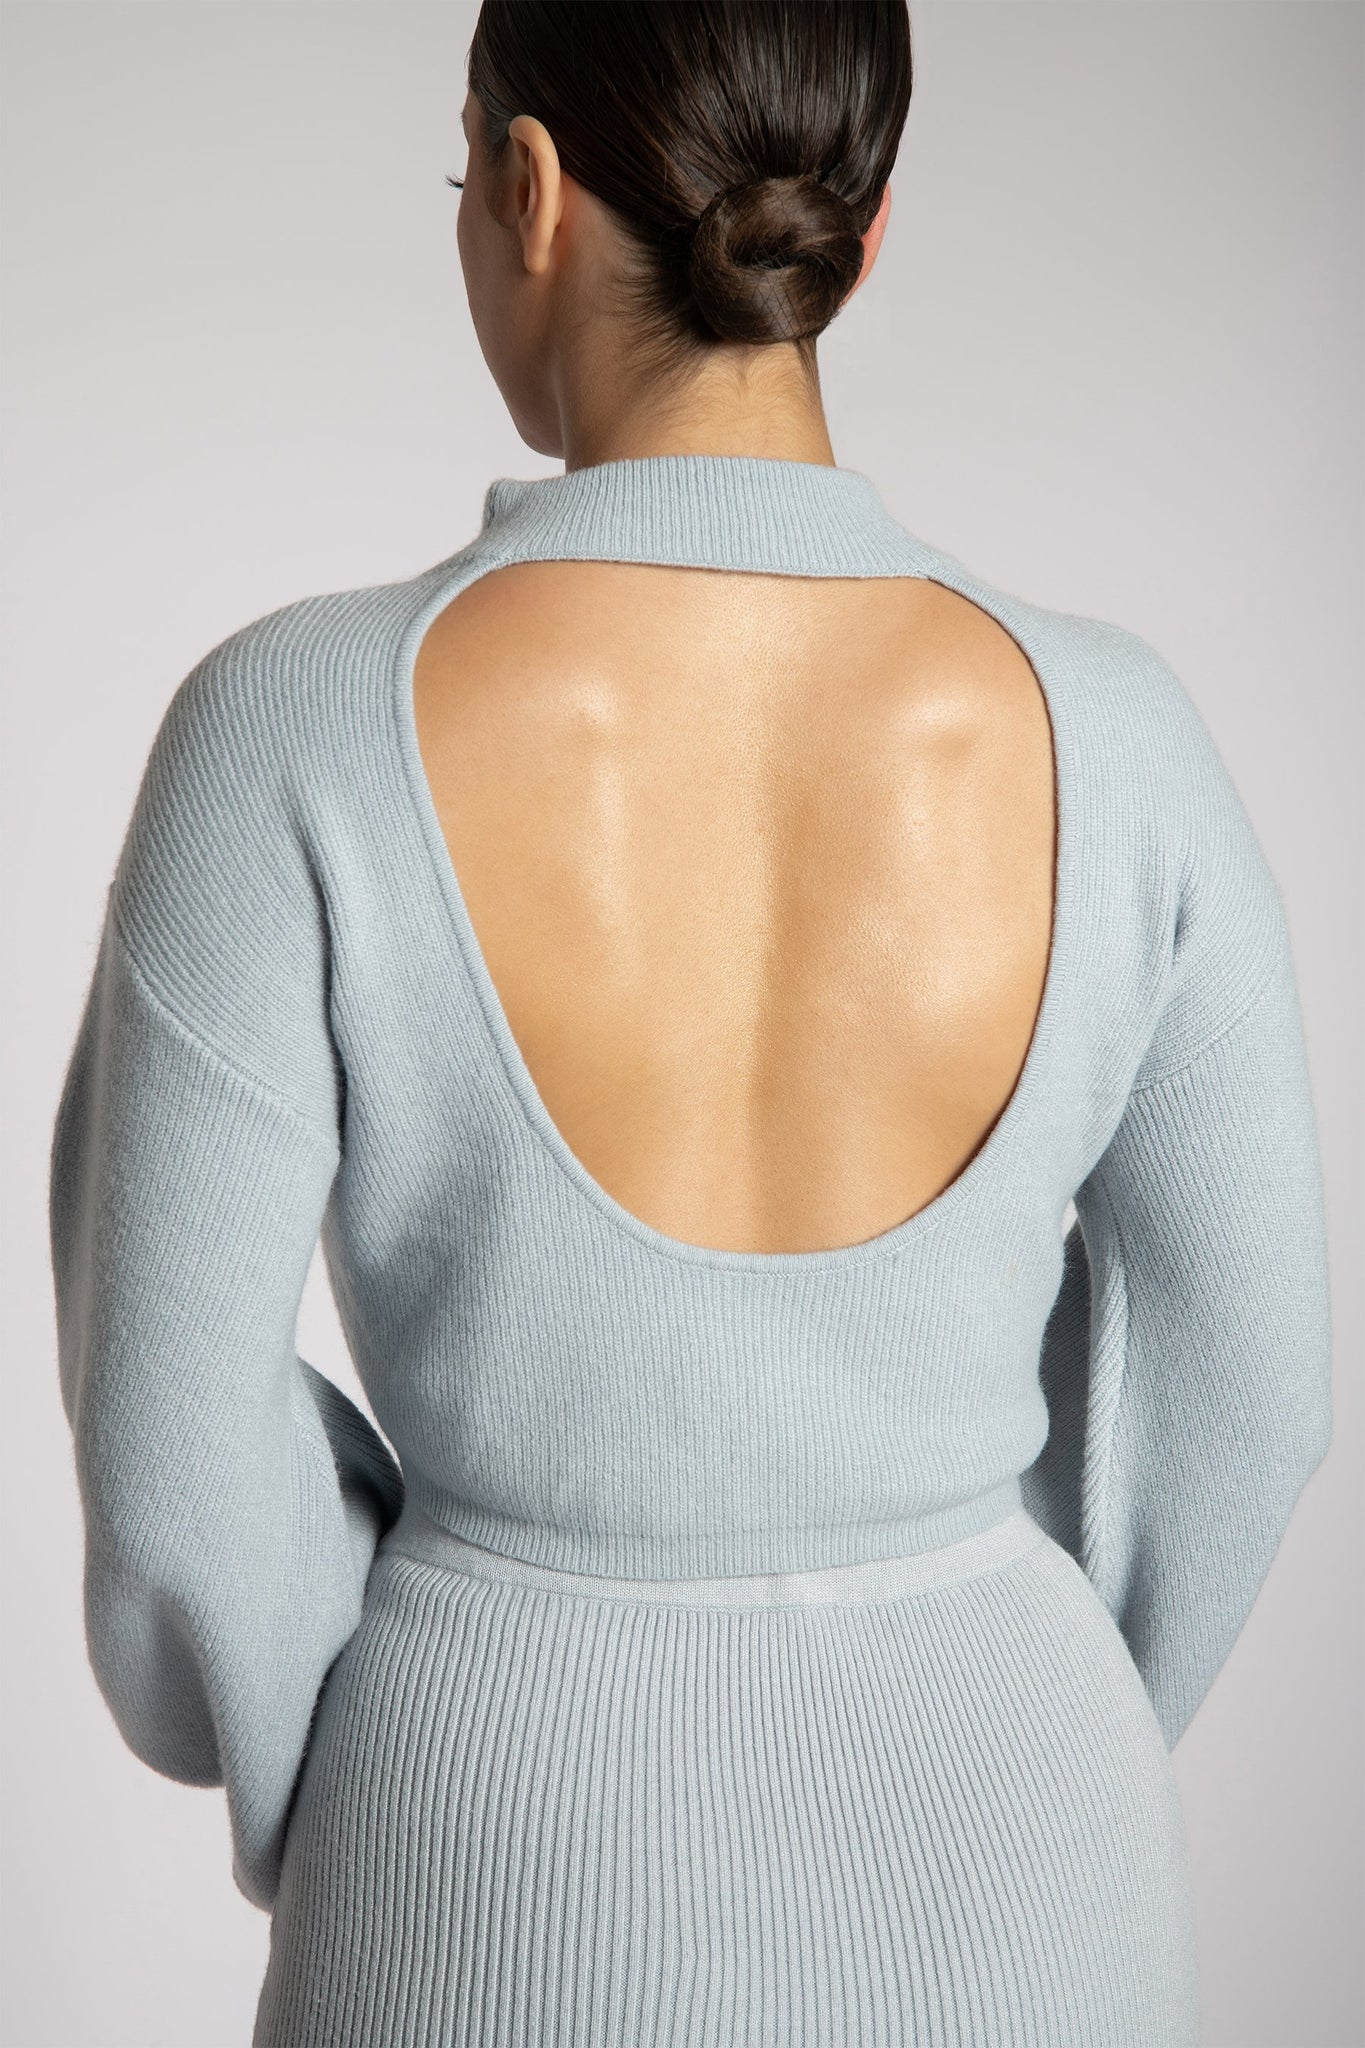 Adley High Neck Backless Knitted Top - Baby Blue - MESHKI